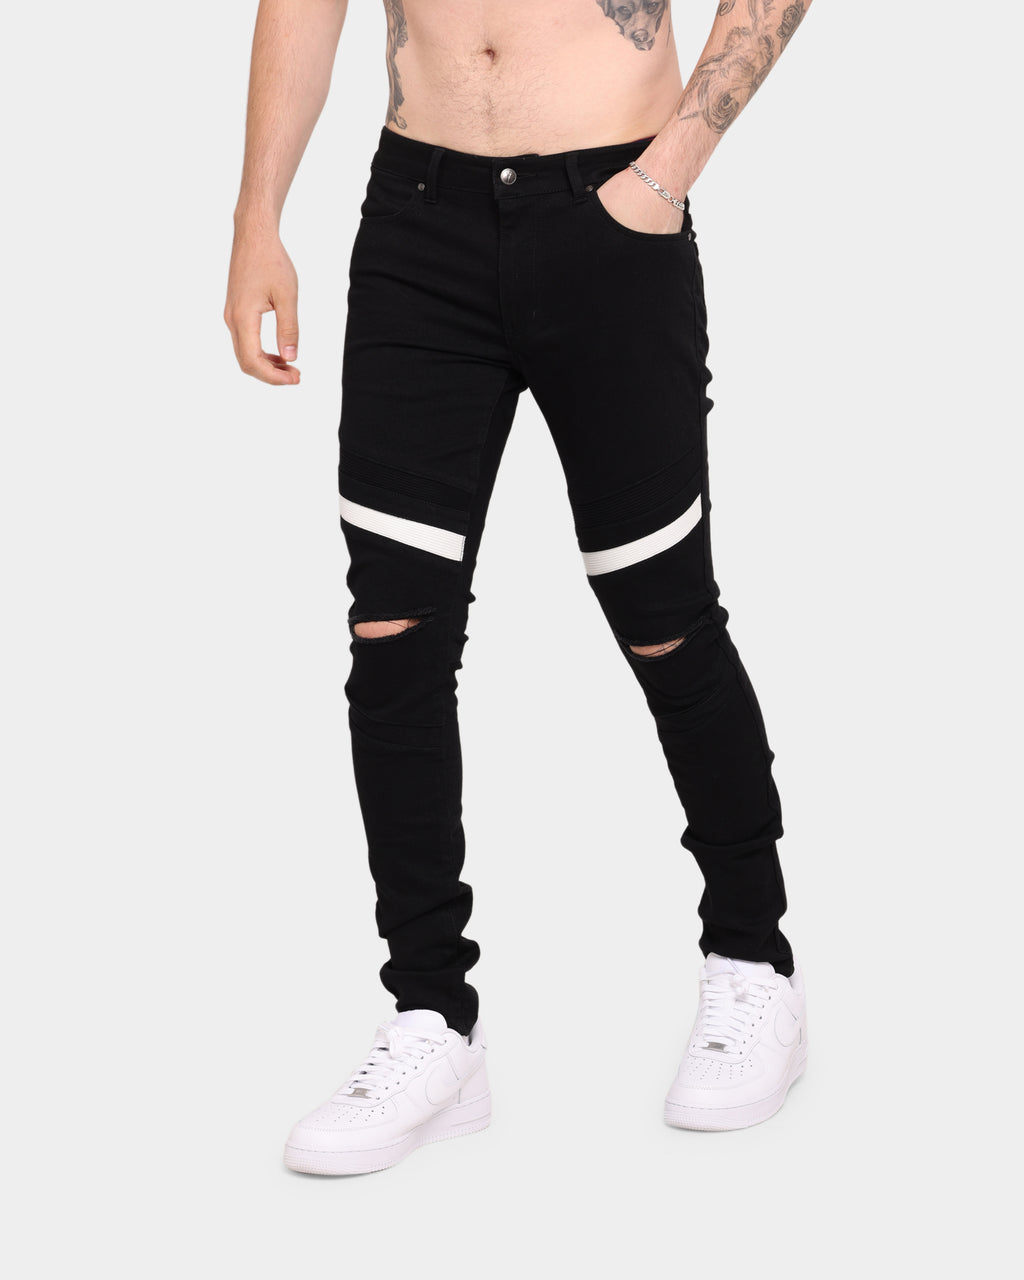 Carré Double Evolution Jean Black/White